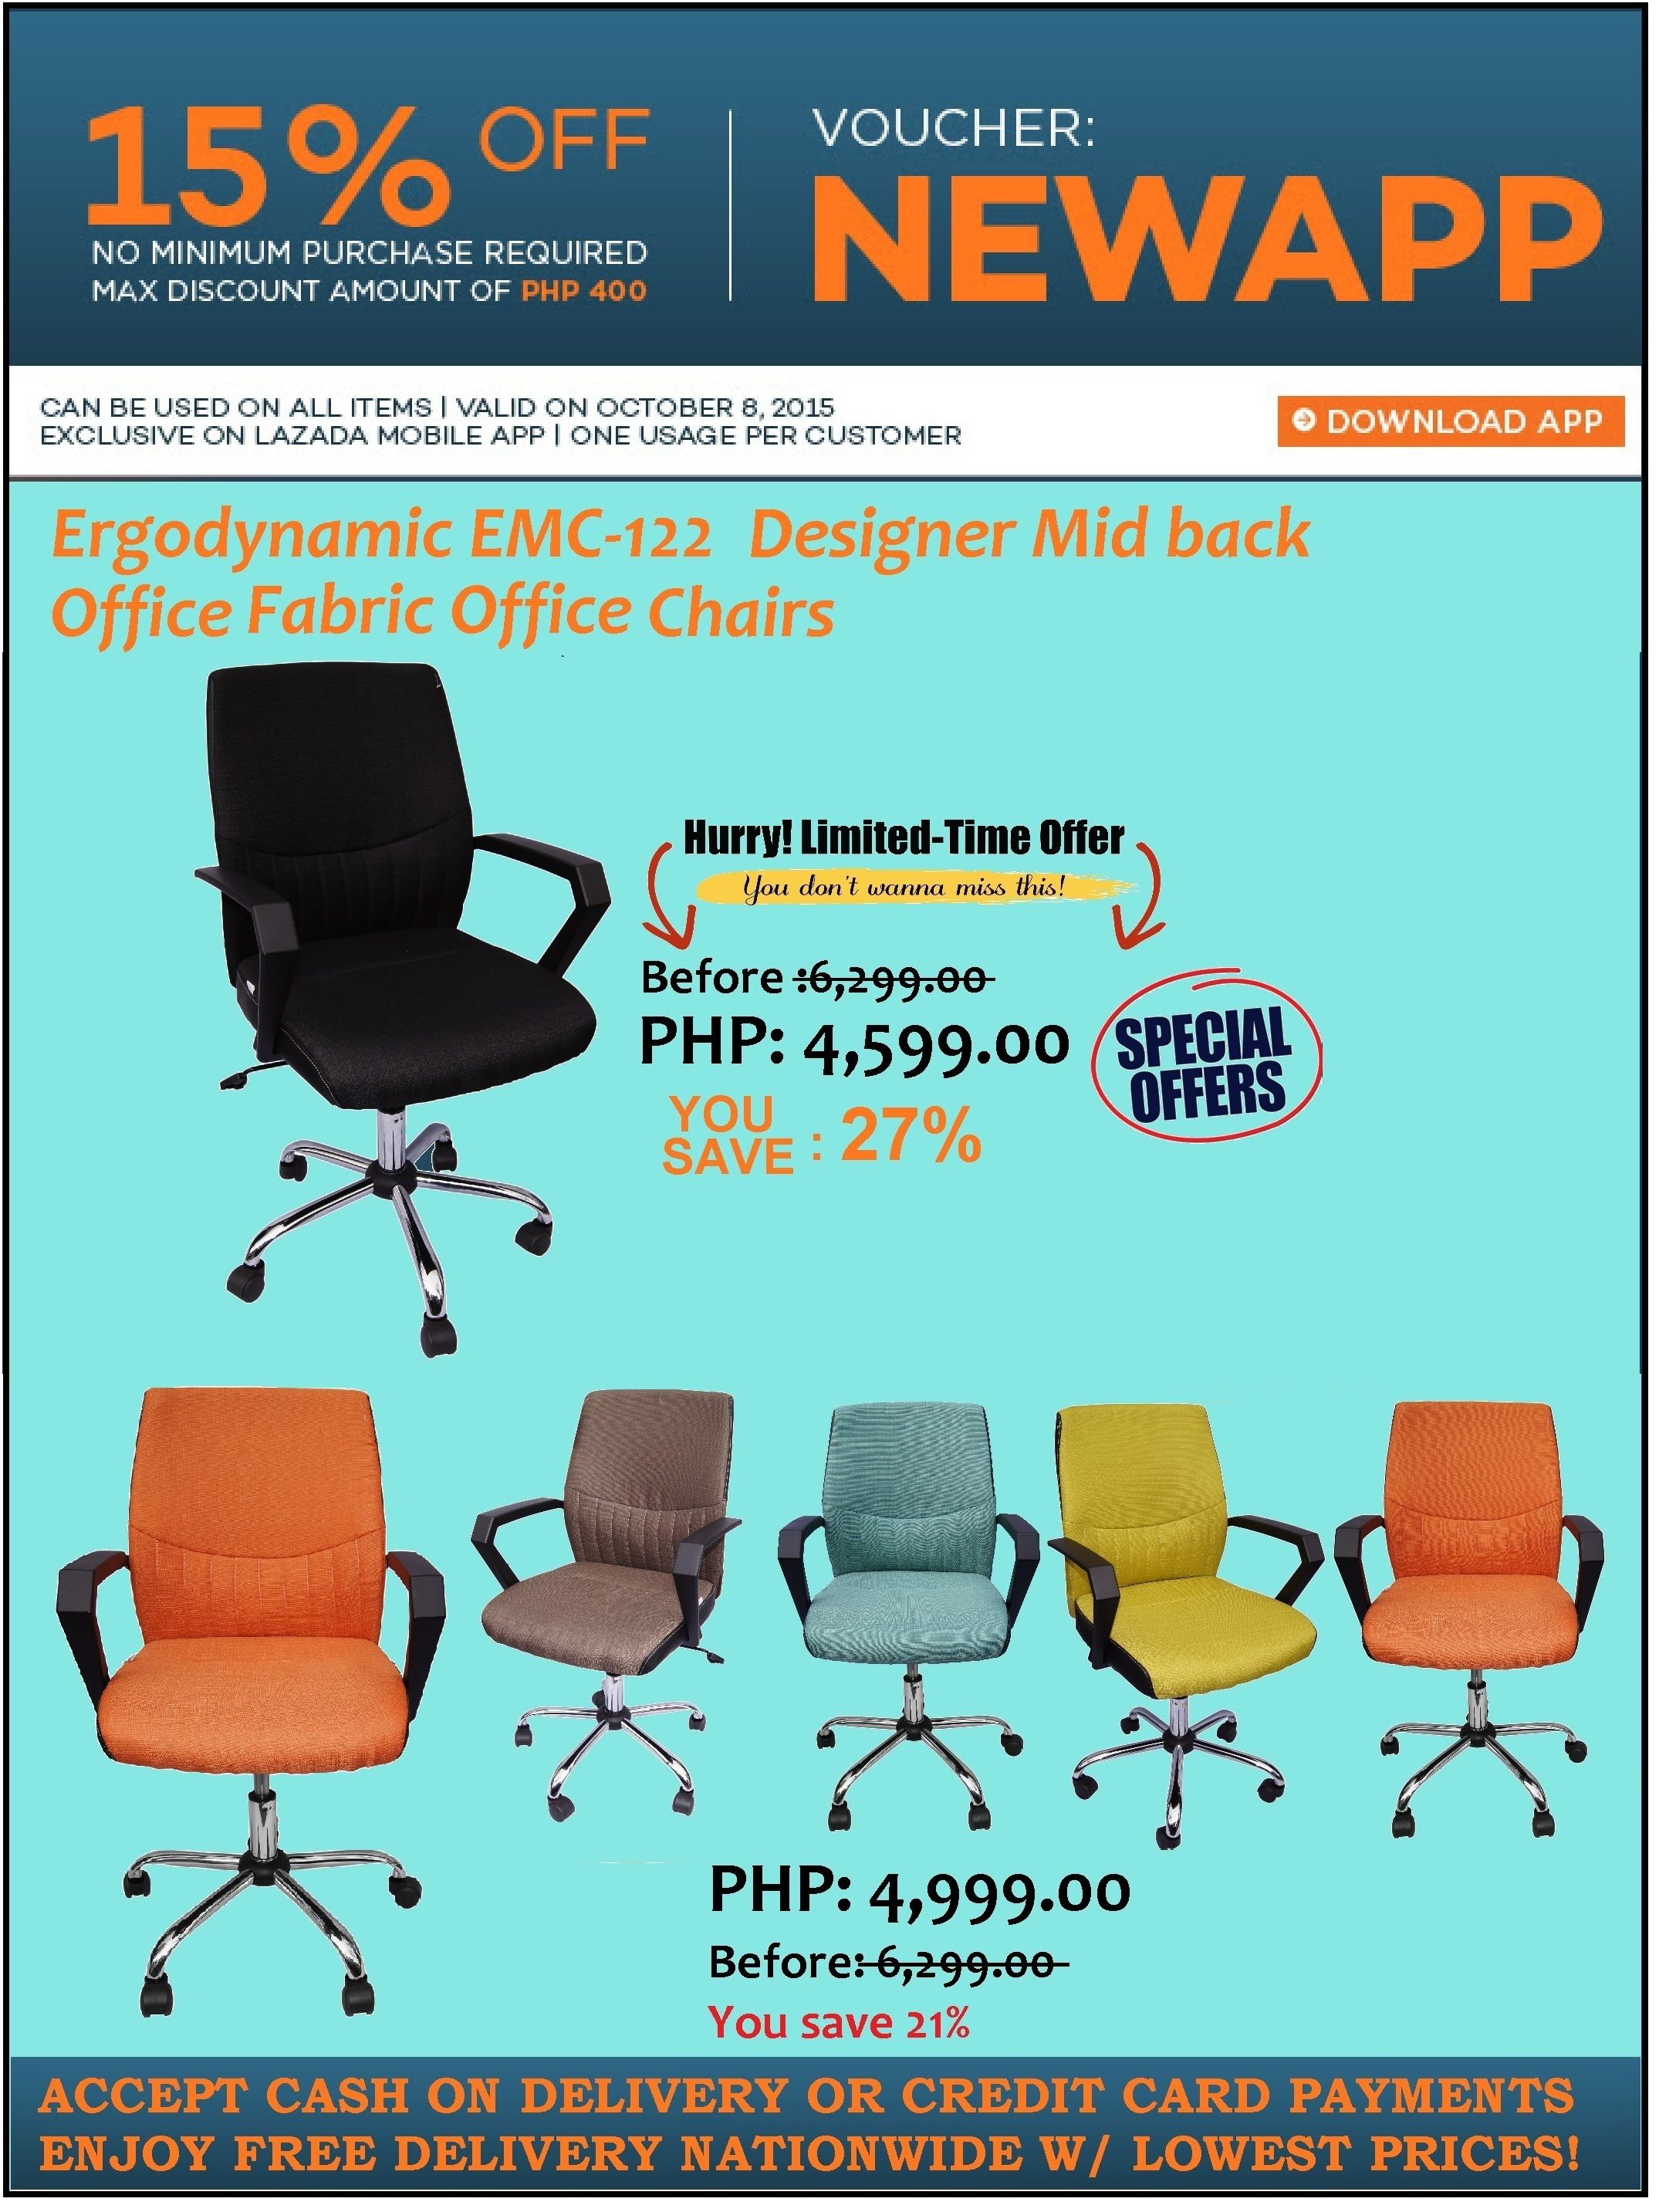 Office Furniture Online Voucher Code